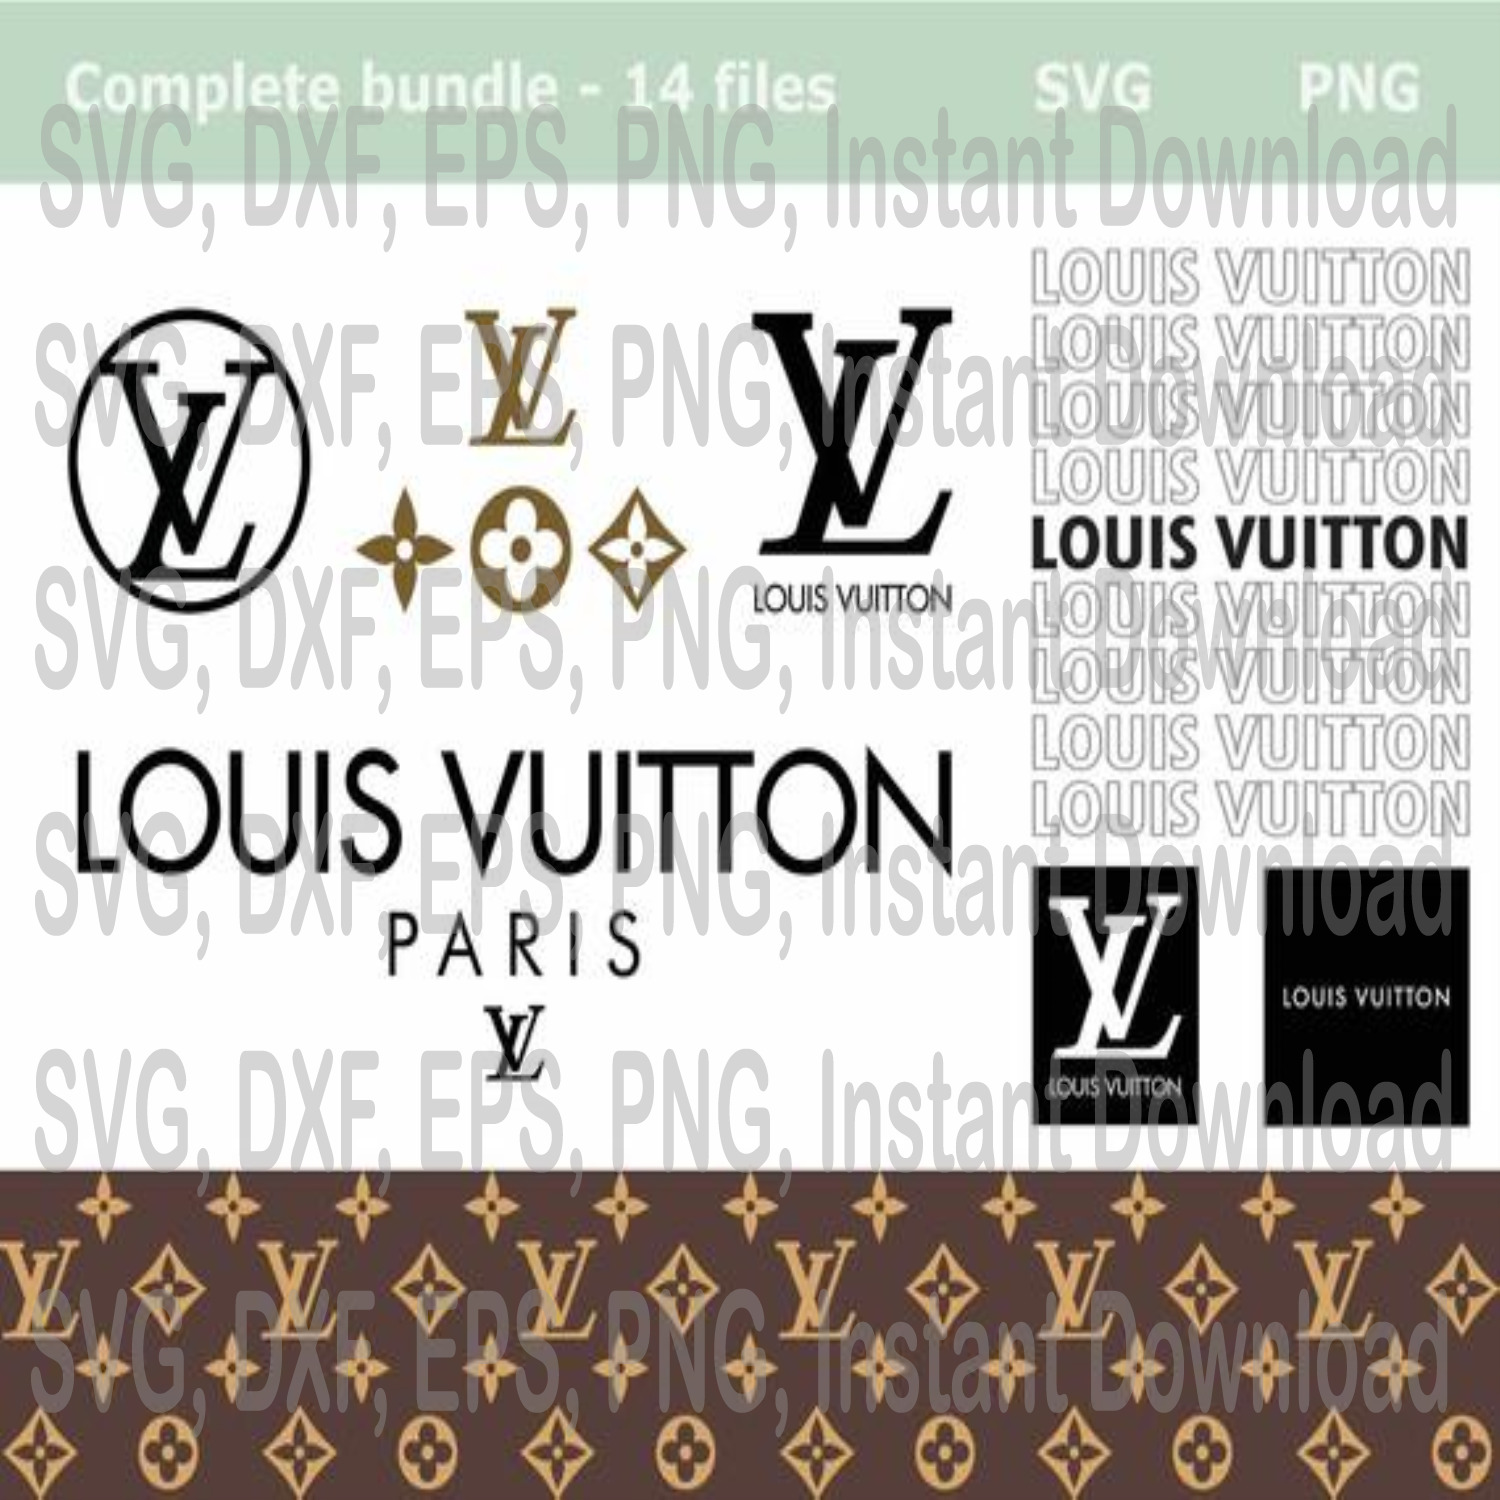 Louis Vuitton Svg Png Lv Svg Logo Bundle Lv By Eventsshop On Zibbet